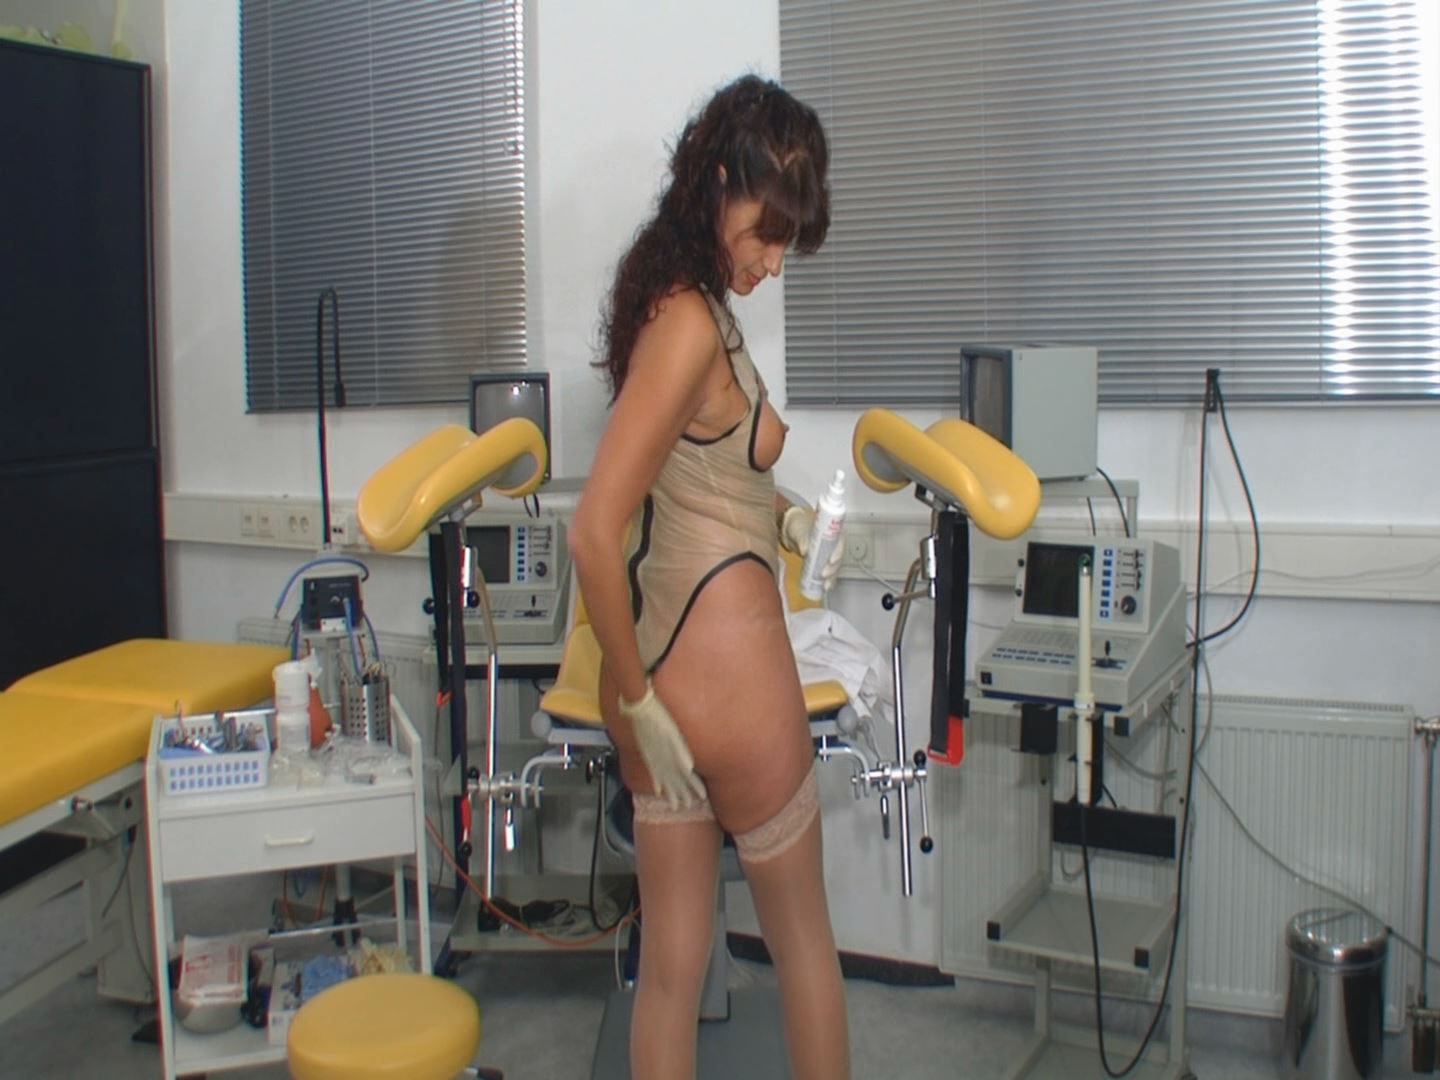 [SPEKULA] Clinicsex injections [FULL HD][1080p][WMV]